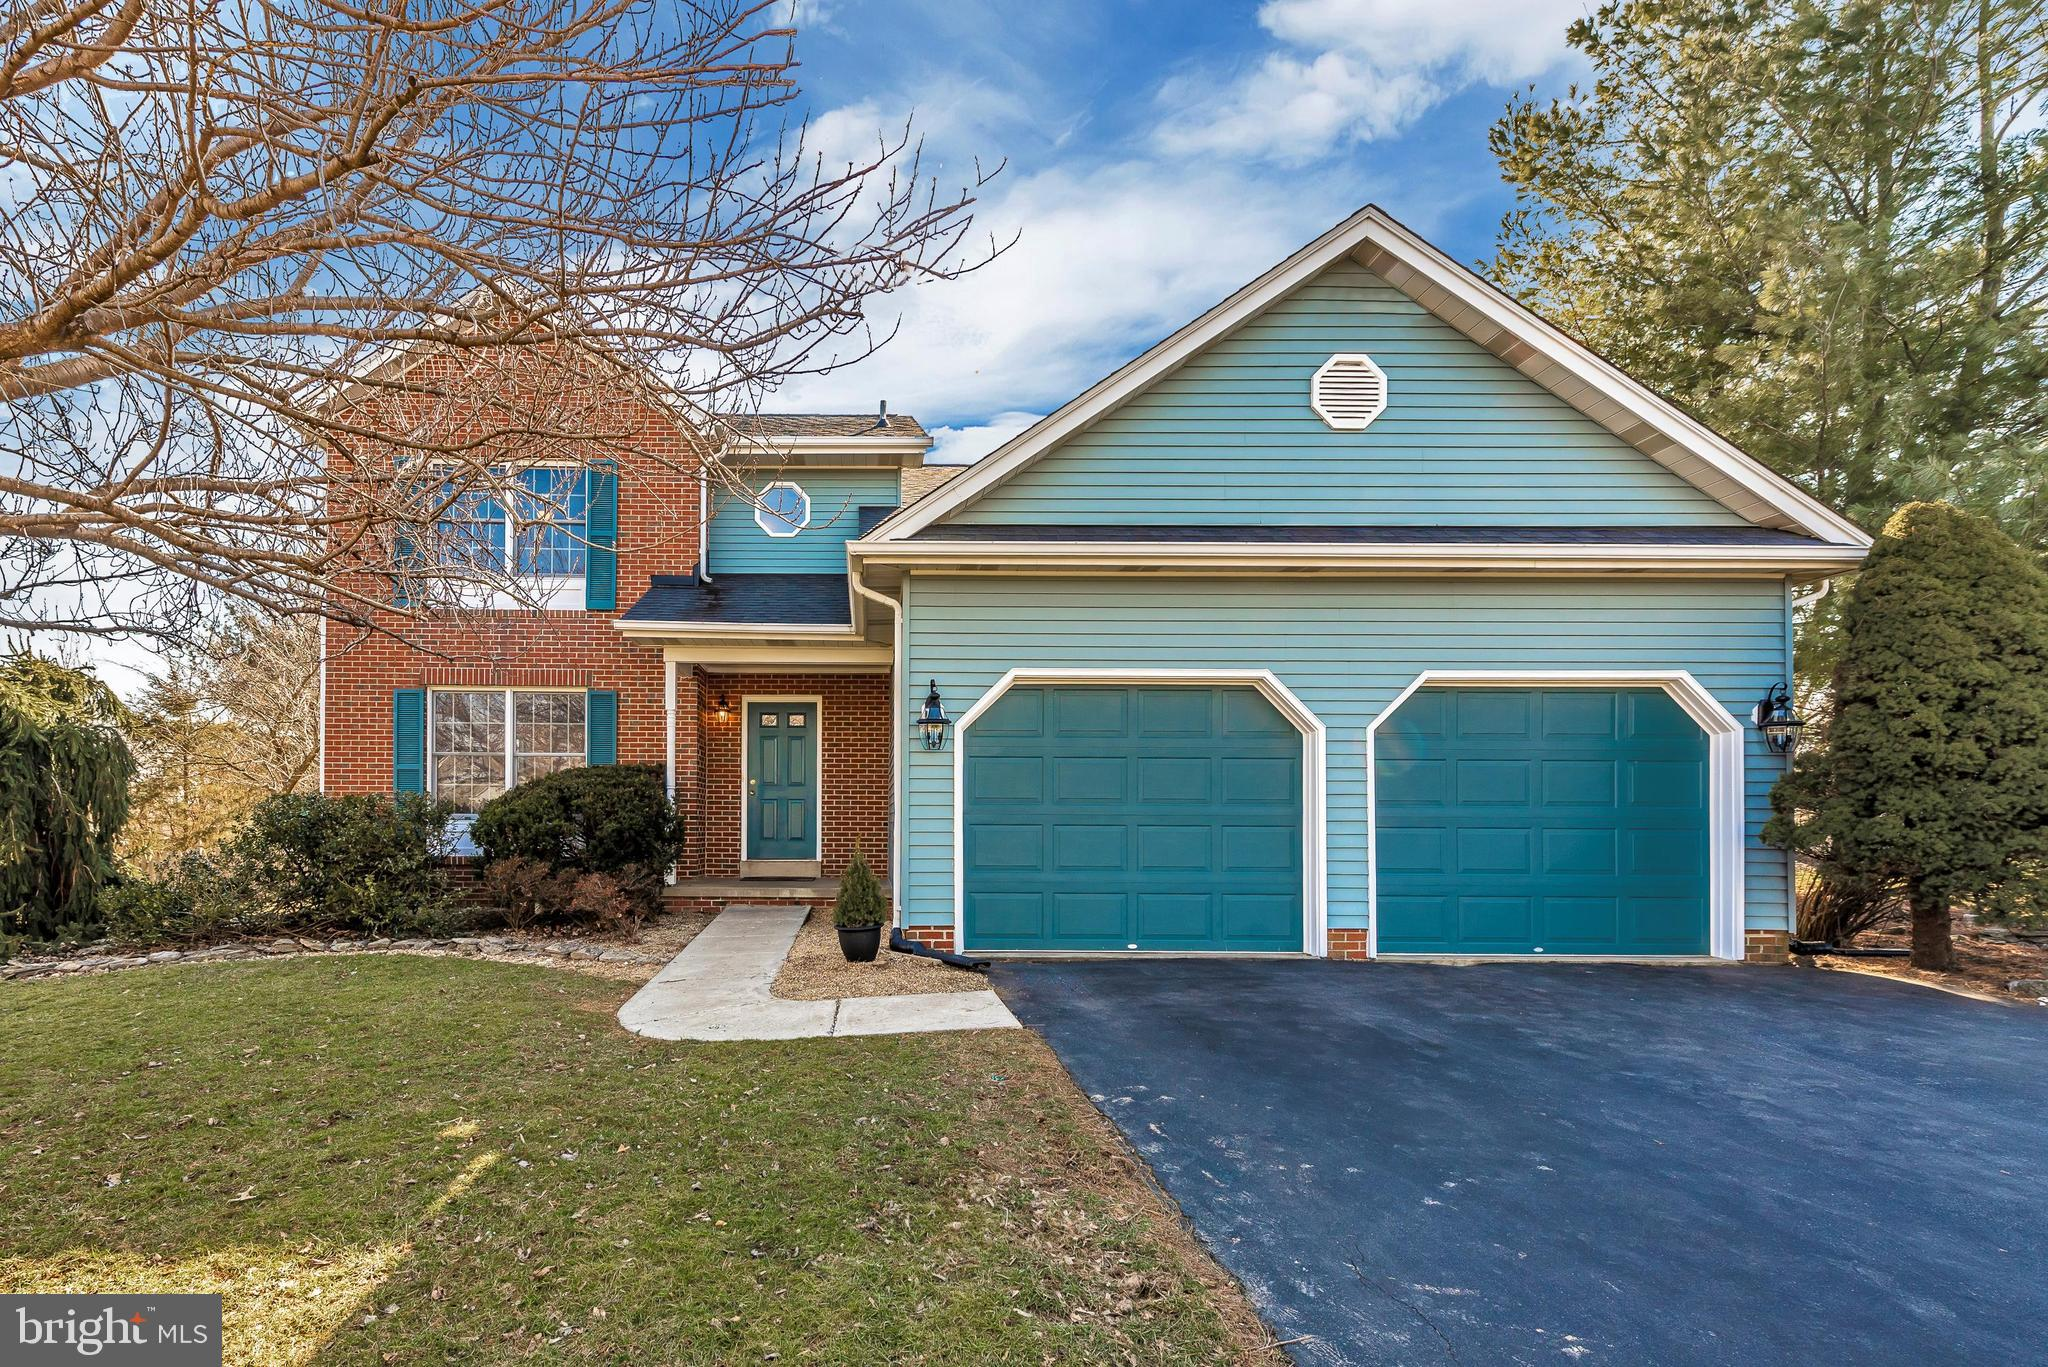 262 PROVIDENCE CIRCLE, WALKERSVILLE, MD 21793